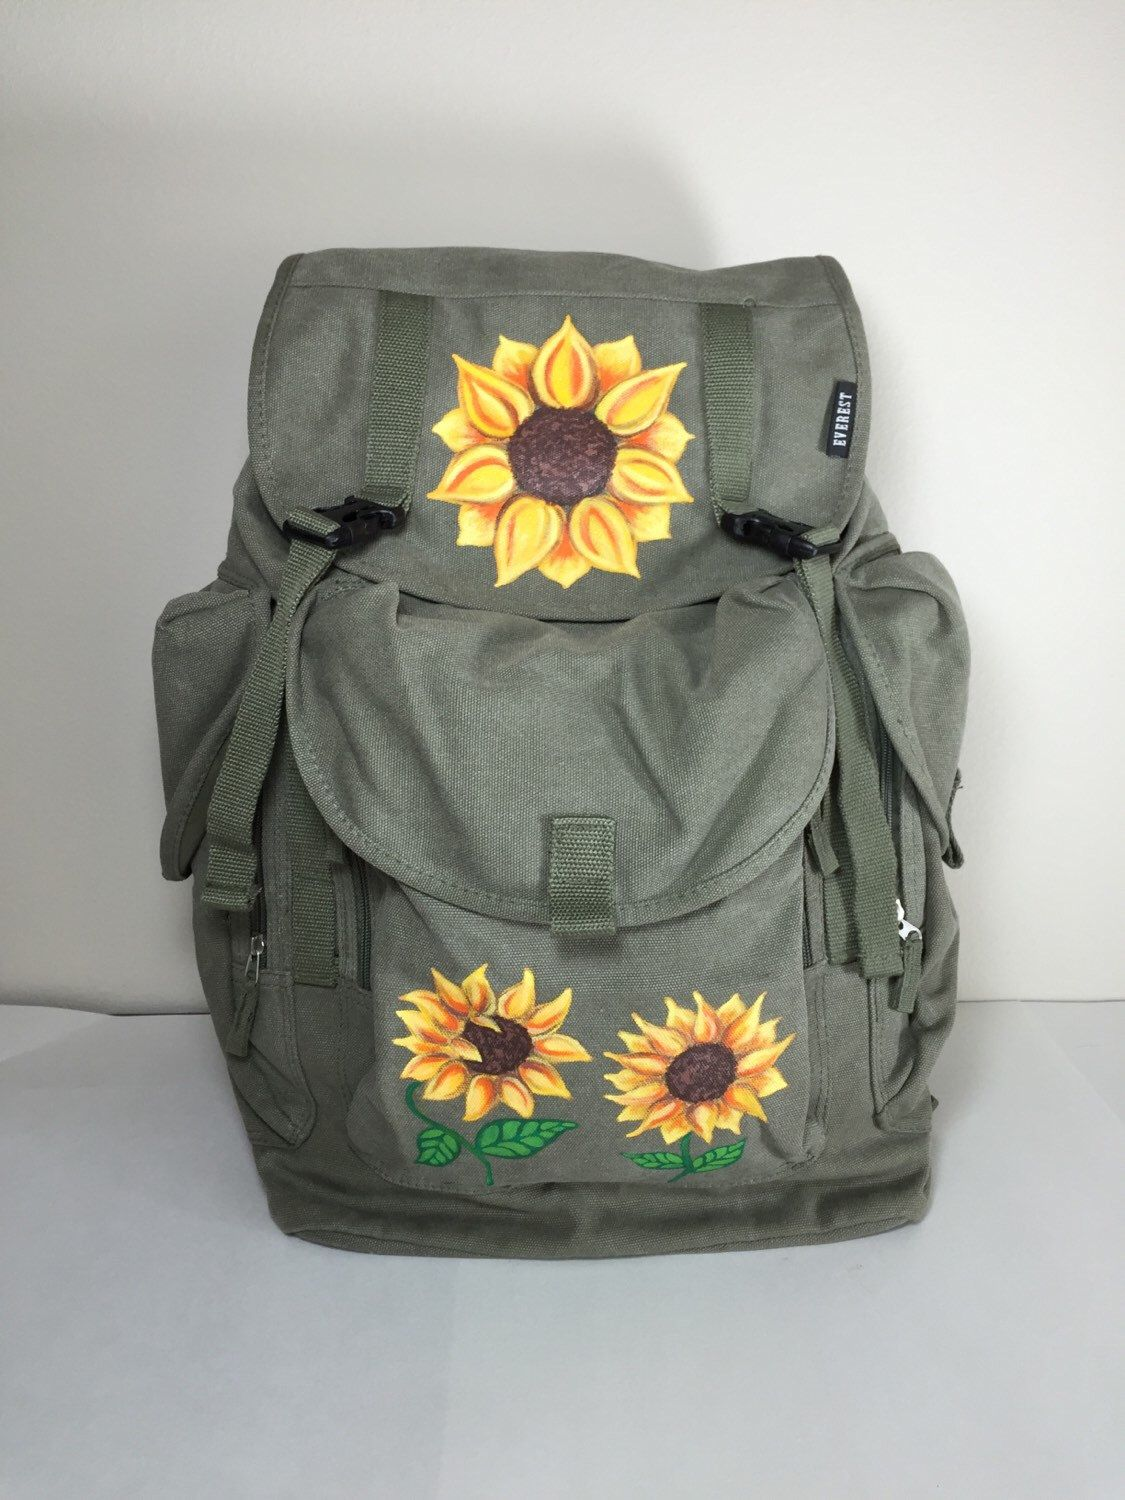 1e7a894098b8 Sunflower Everest Canvas Backpack Hand Painted by Nichole Elder ...